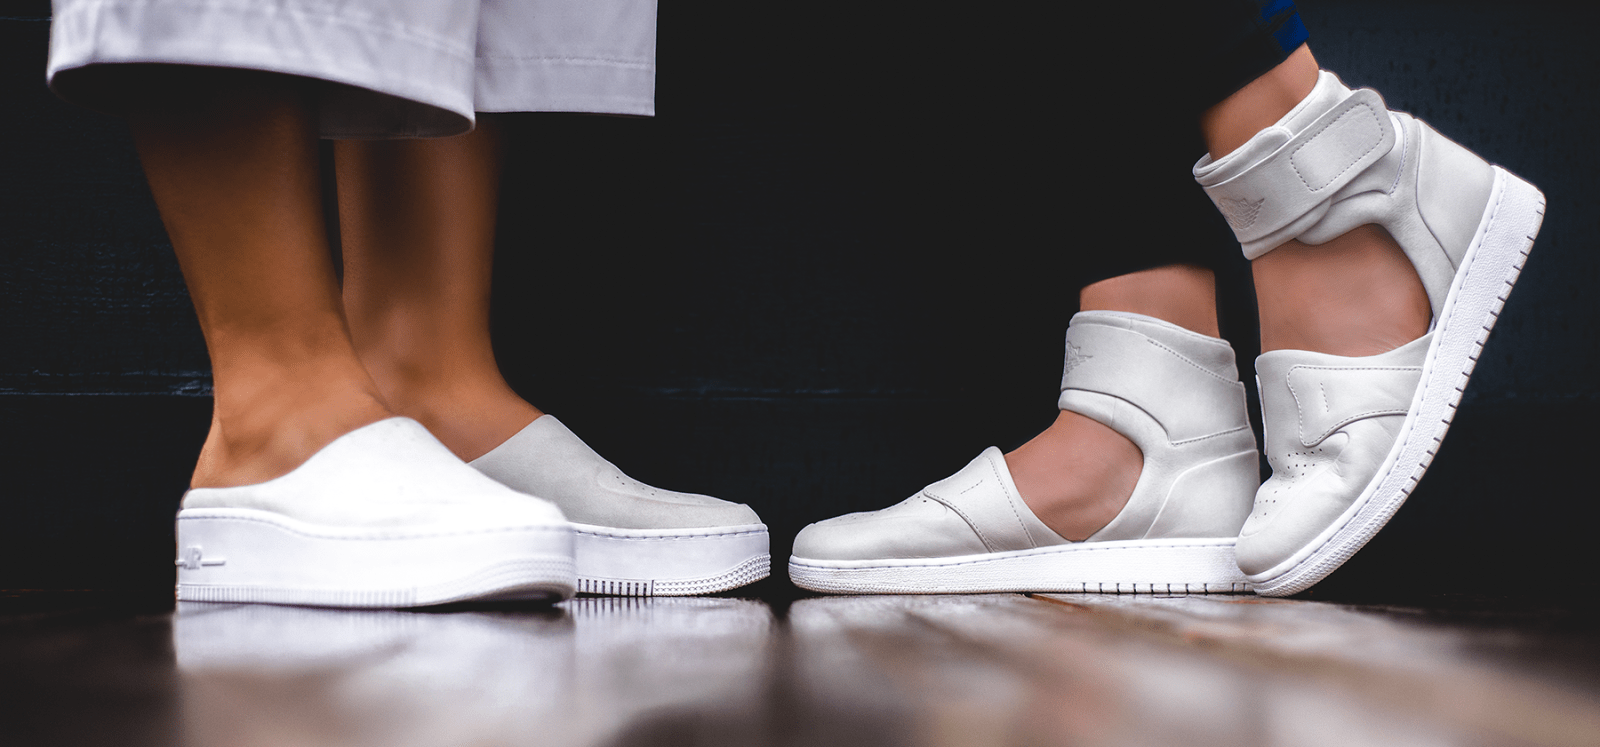 Nike The 1 Reimagined Lover XX Air Force 1 Jordan Jumpman Women Female Design Collective Release Date Where to Buy Closer On Feet Look White Mule Sandal Strap